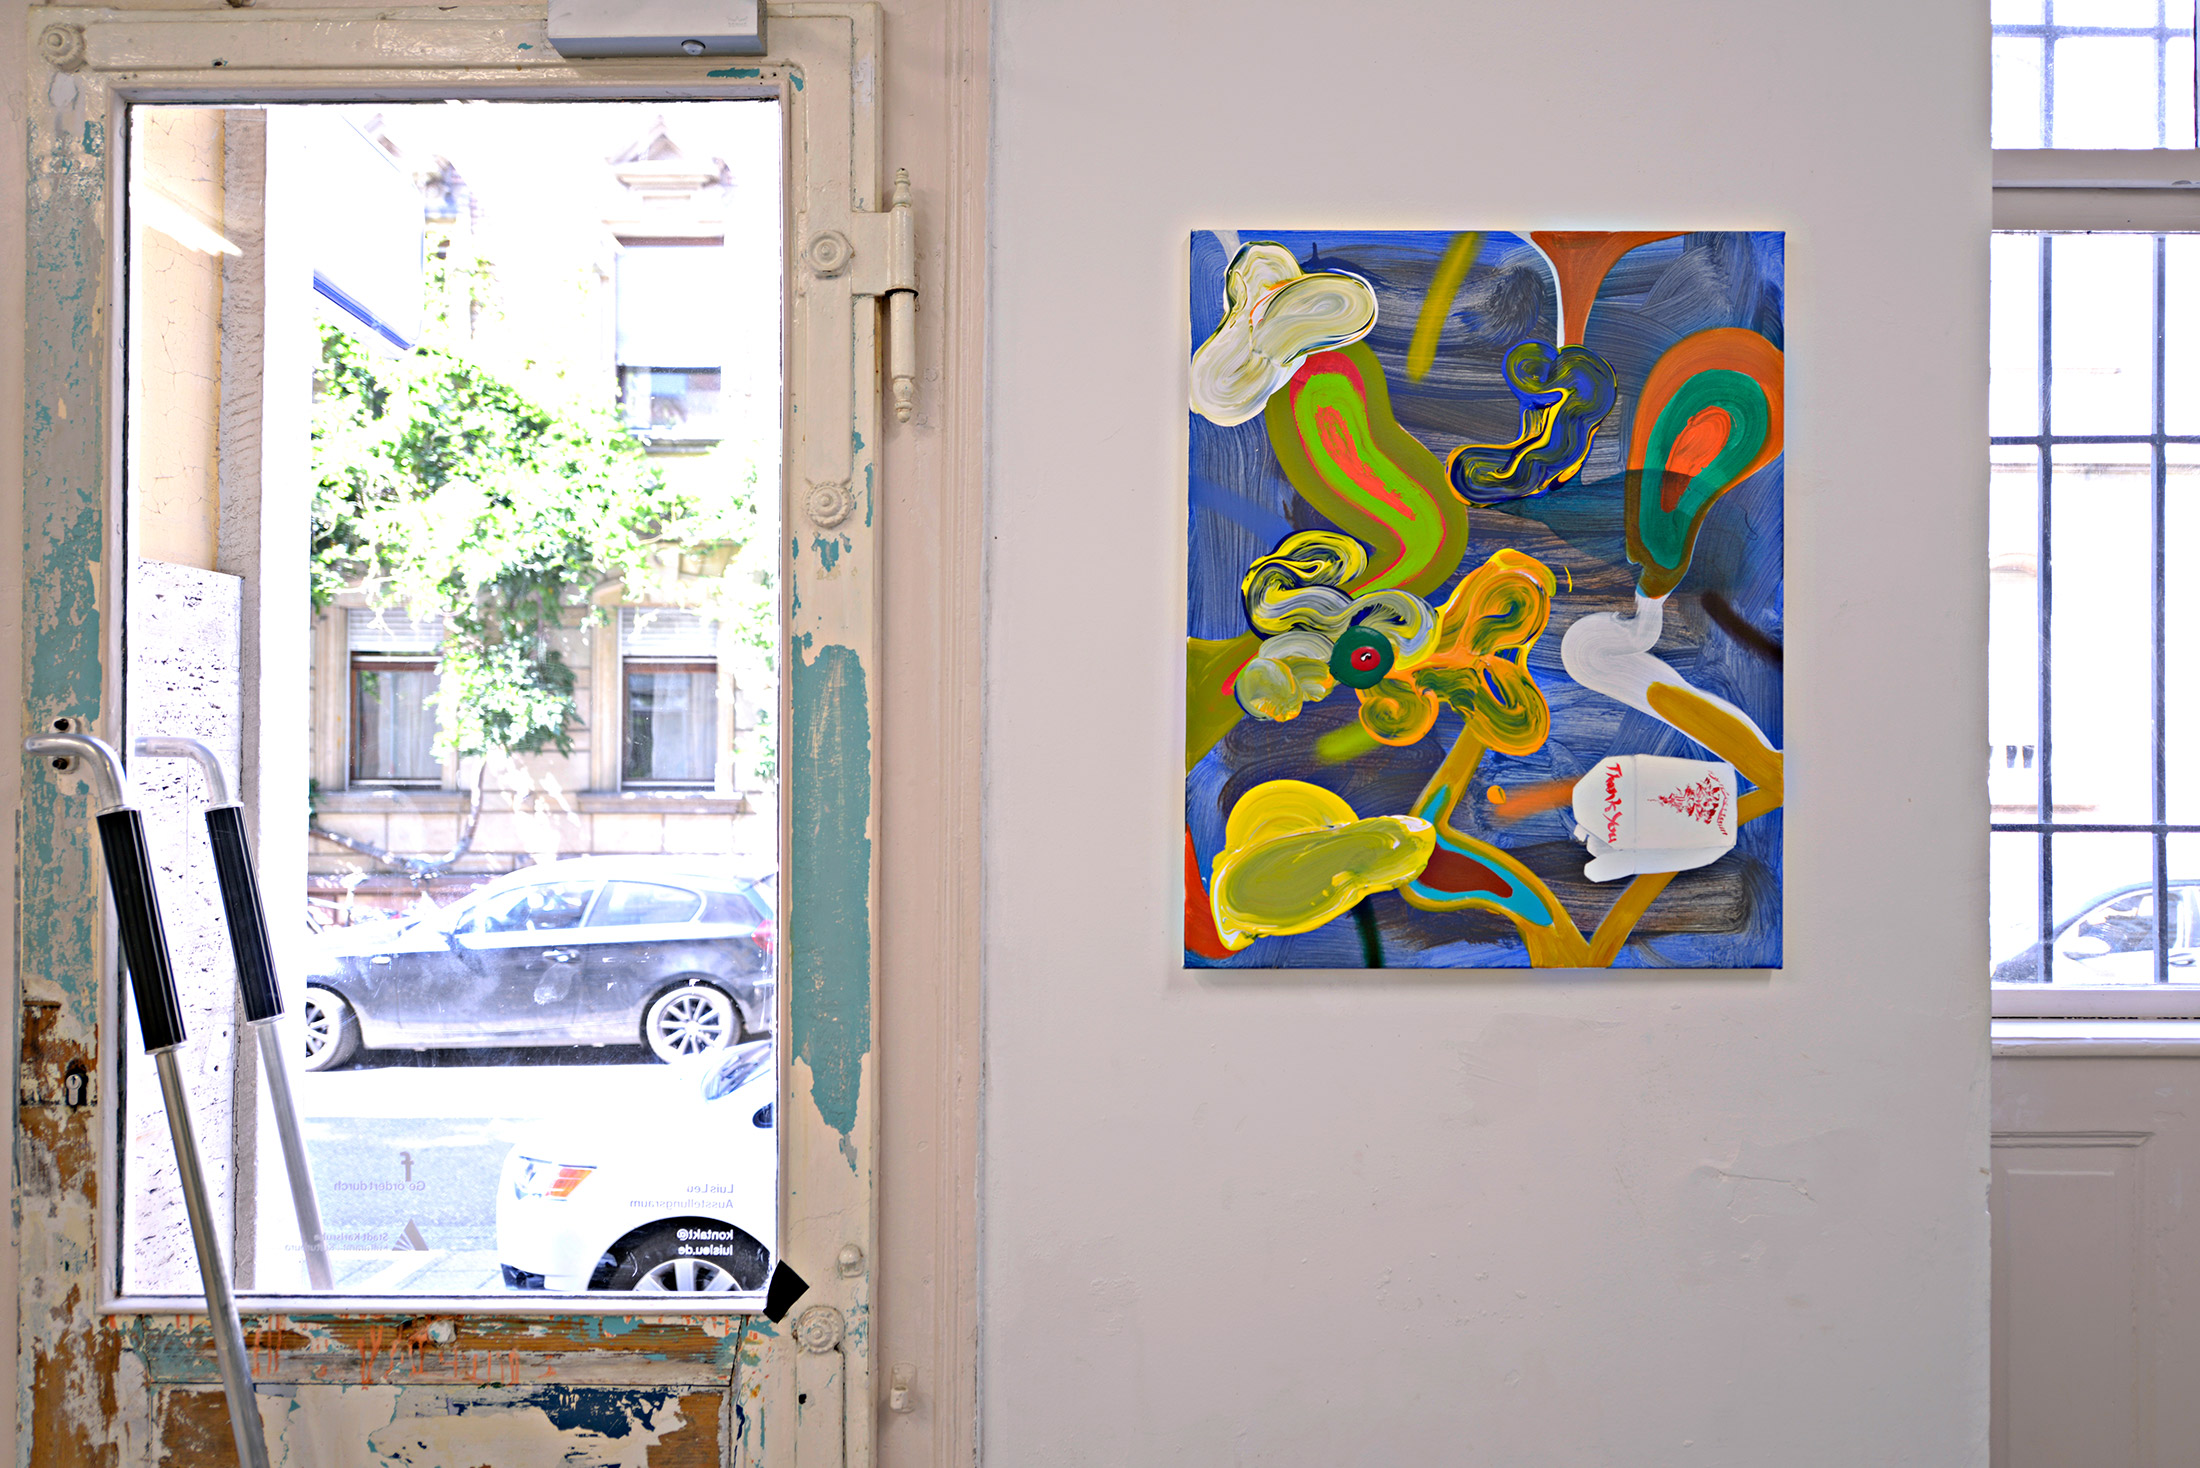 mathis pauer, in his studio, contemporary art, painting on wall, view outside